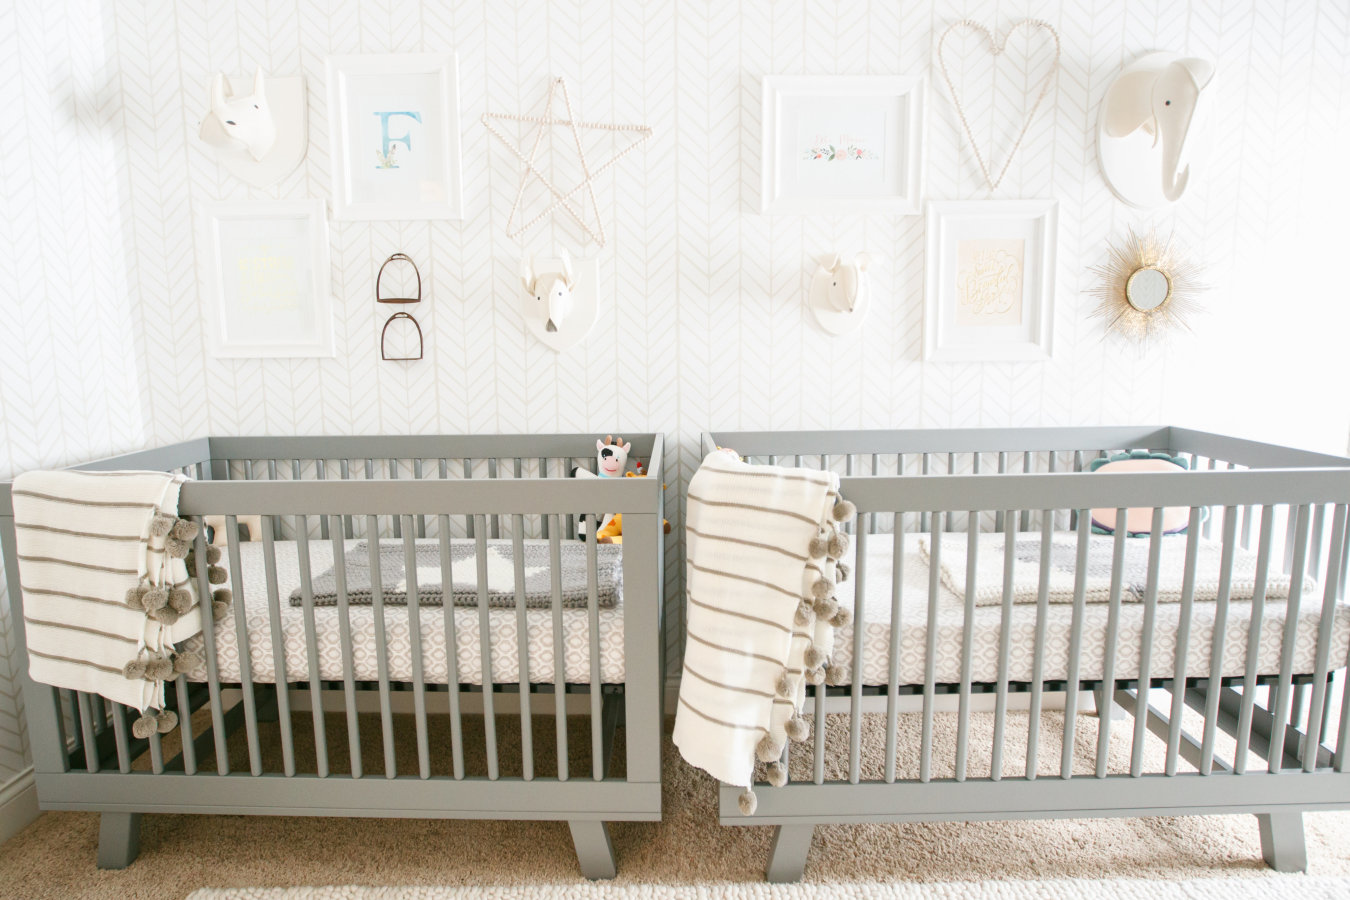 A bright and neutral toned nursery